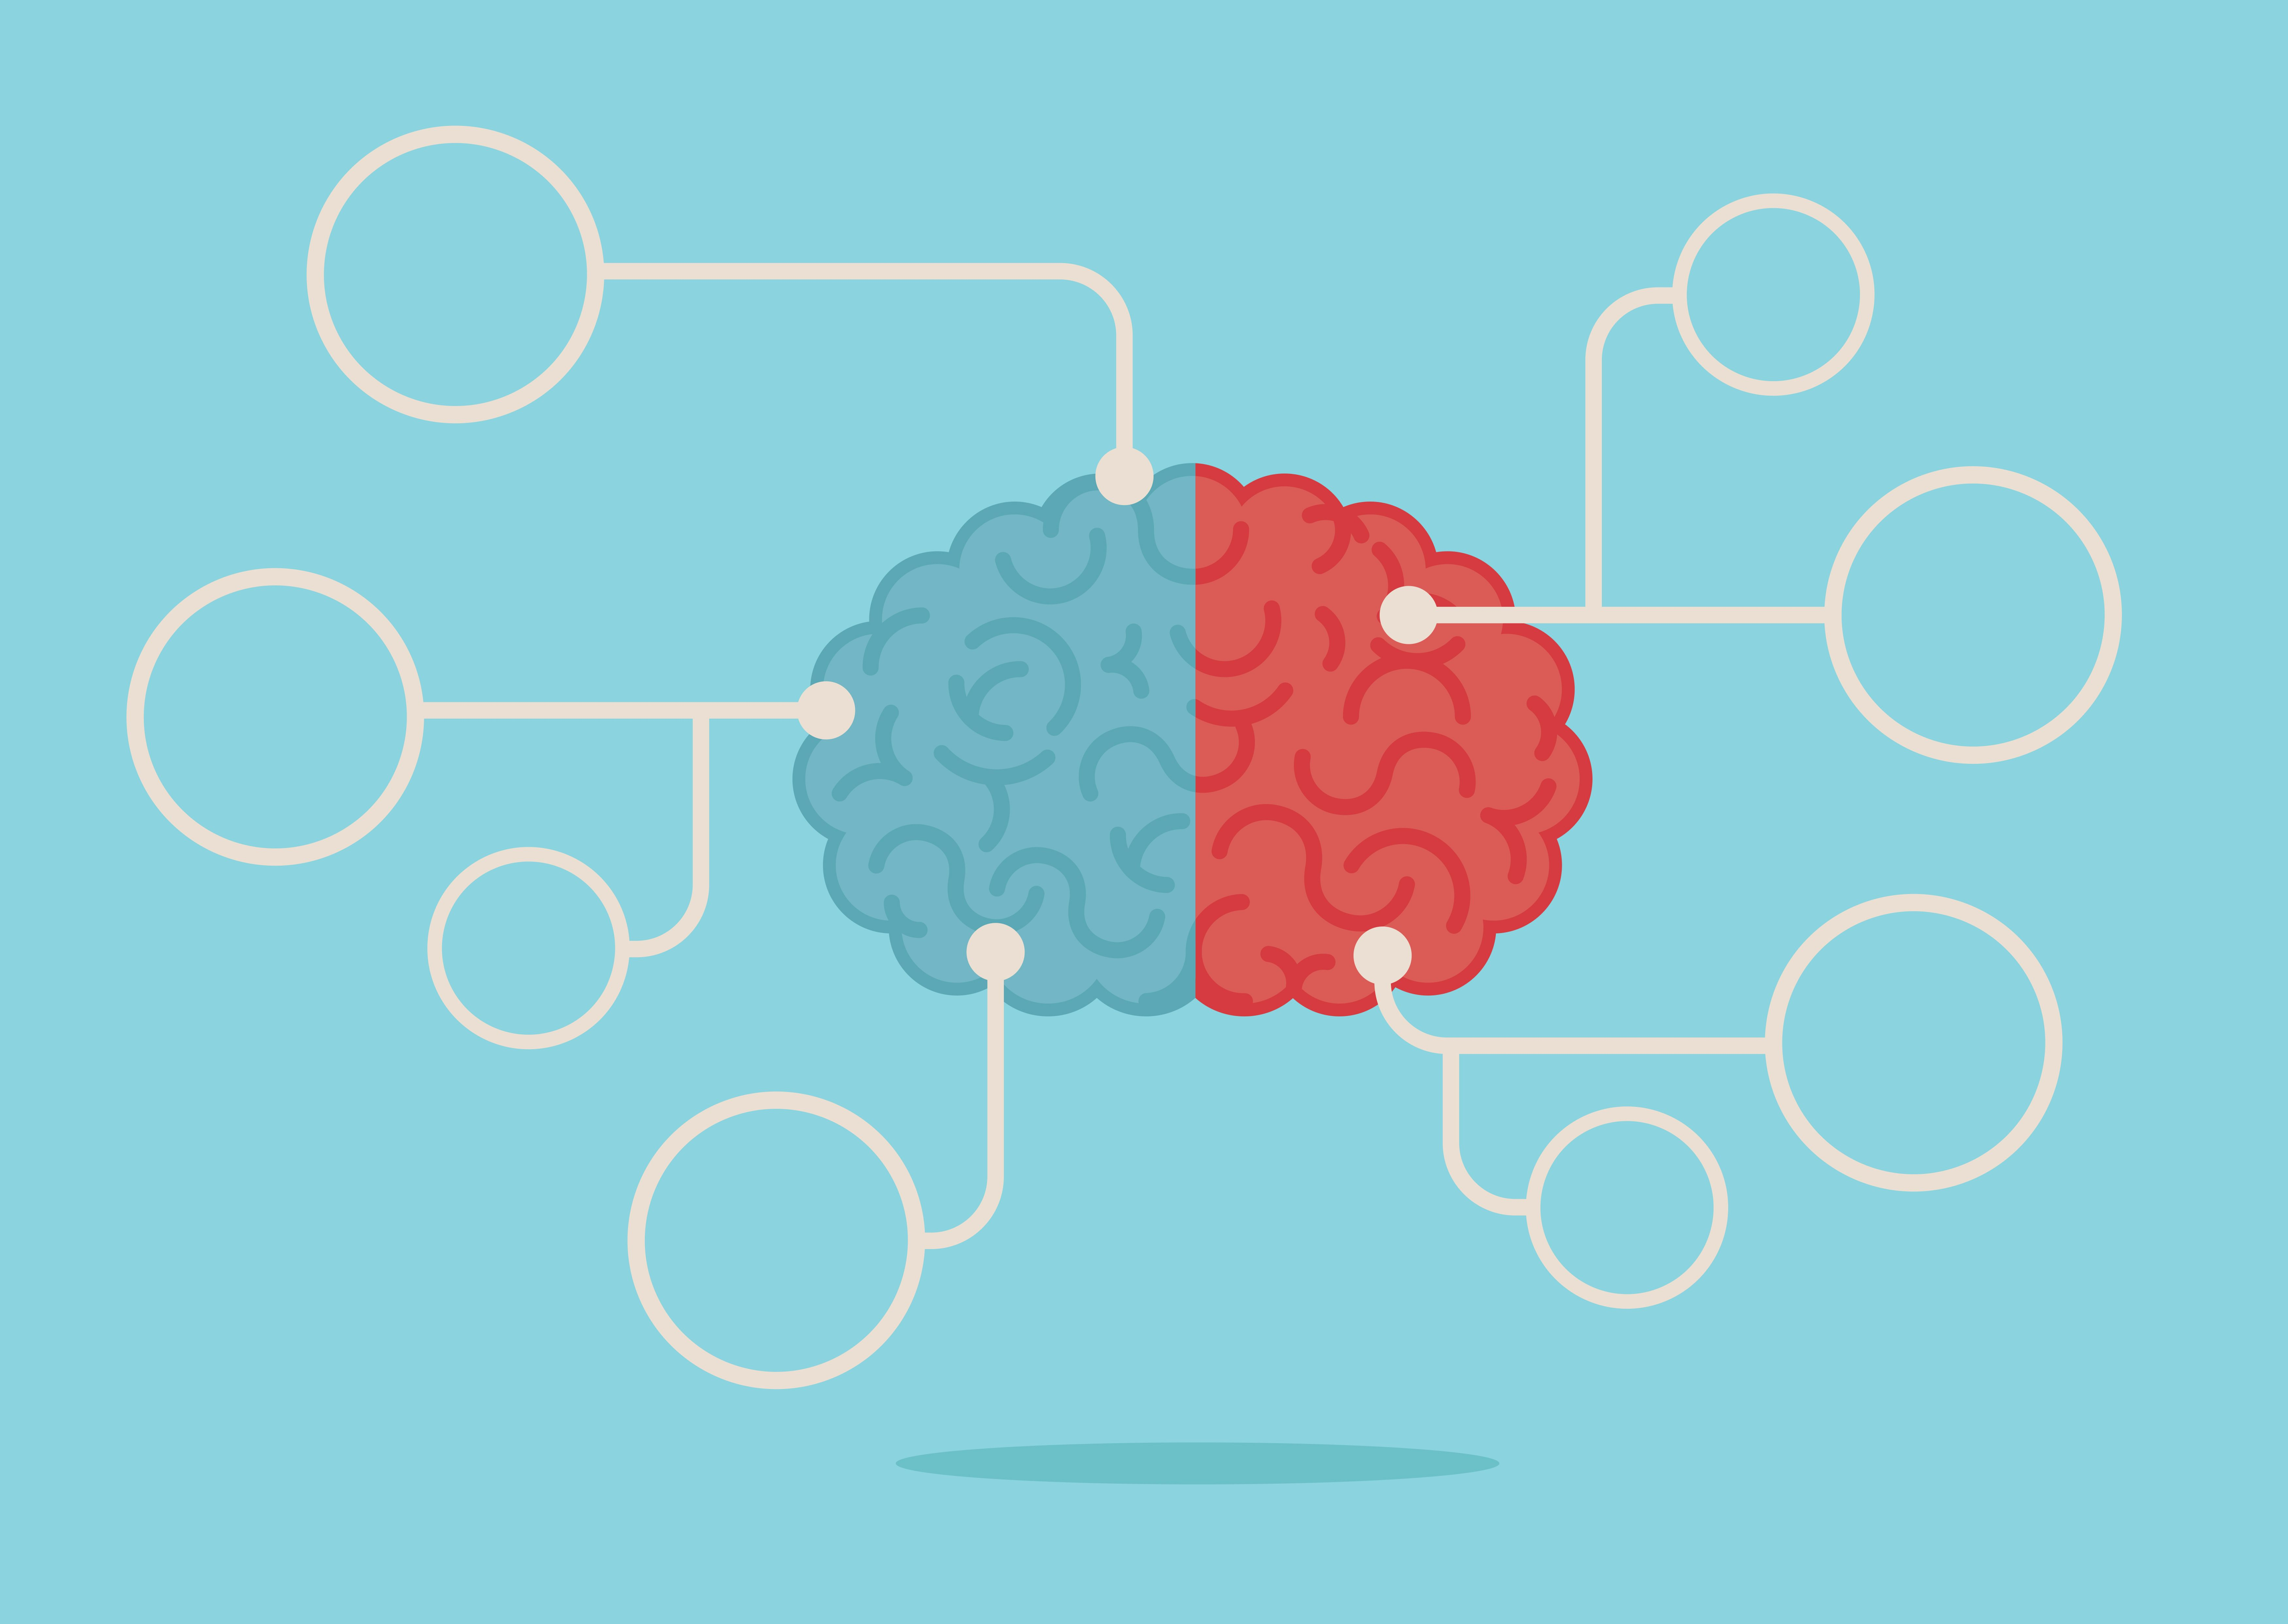 3 Psychological Principles for High-Converting Landing Pages